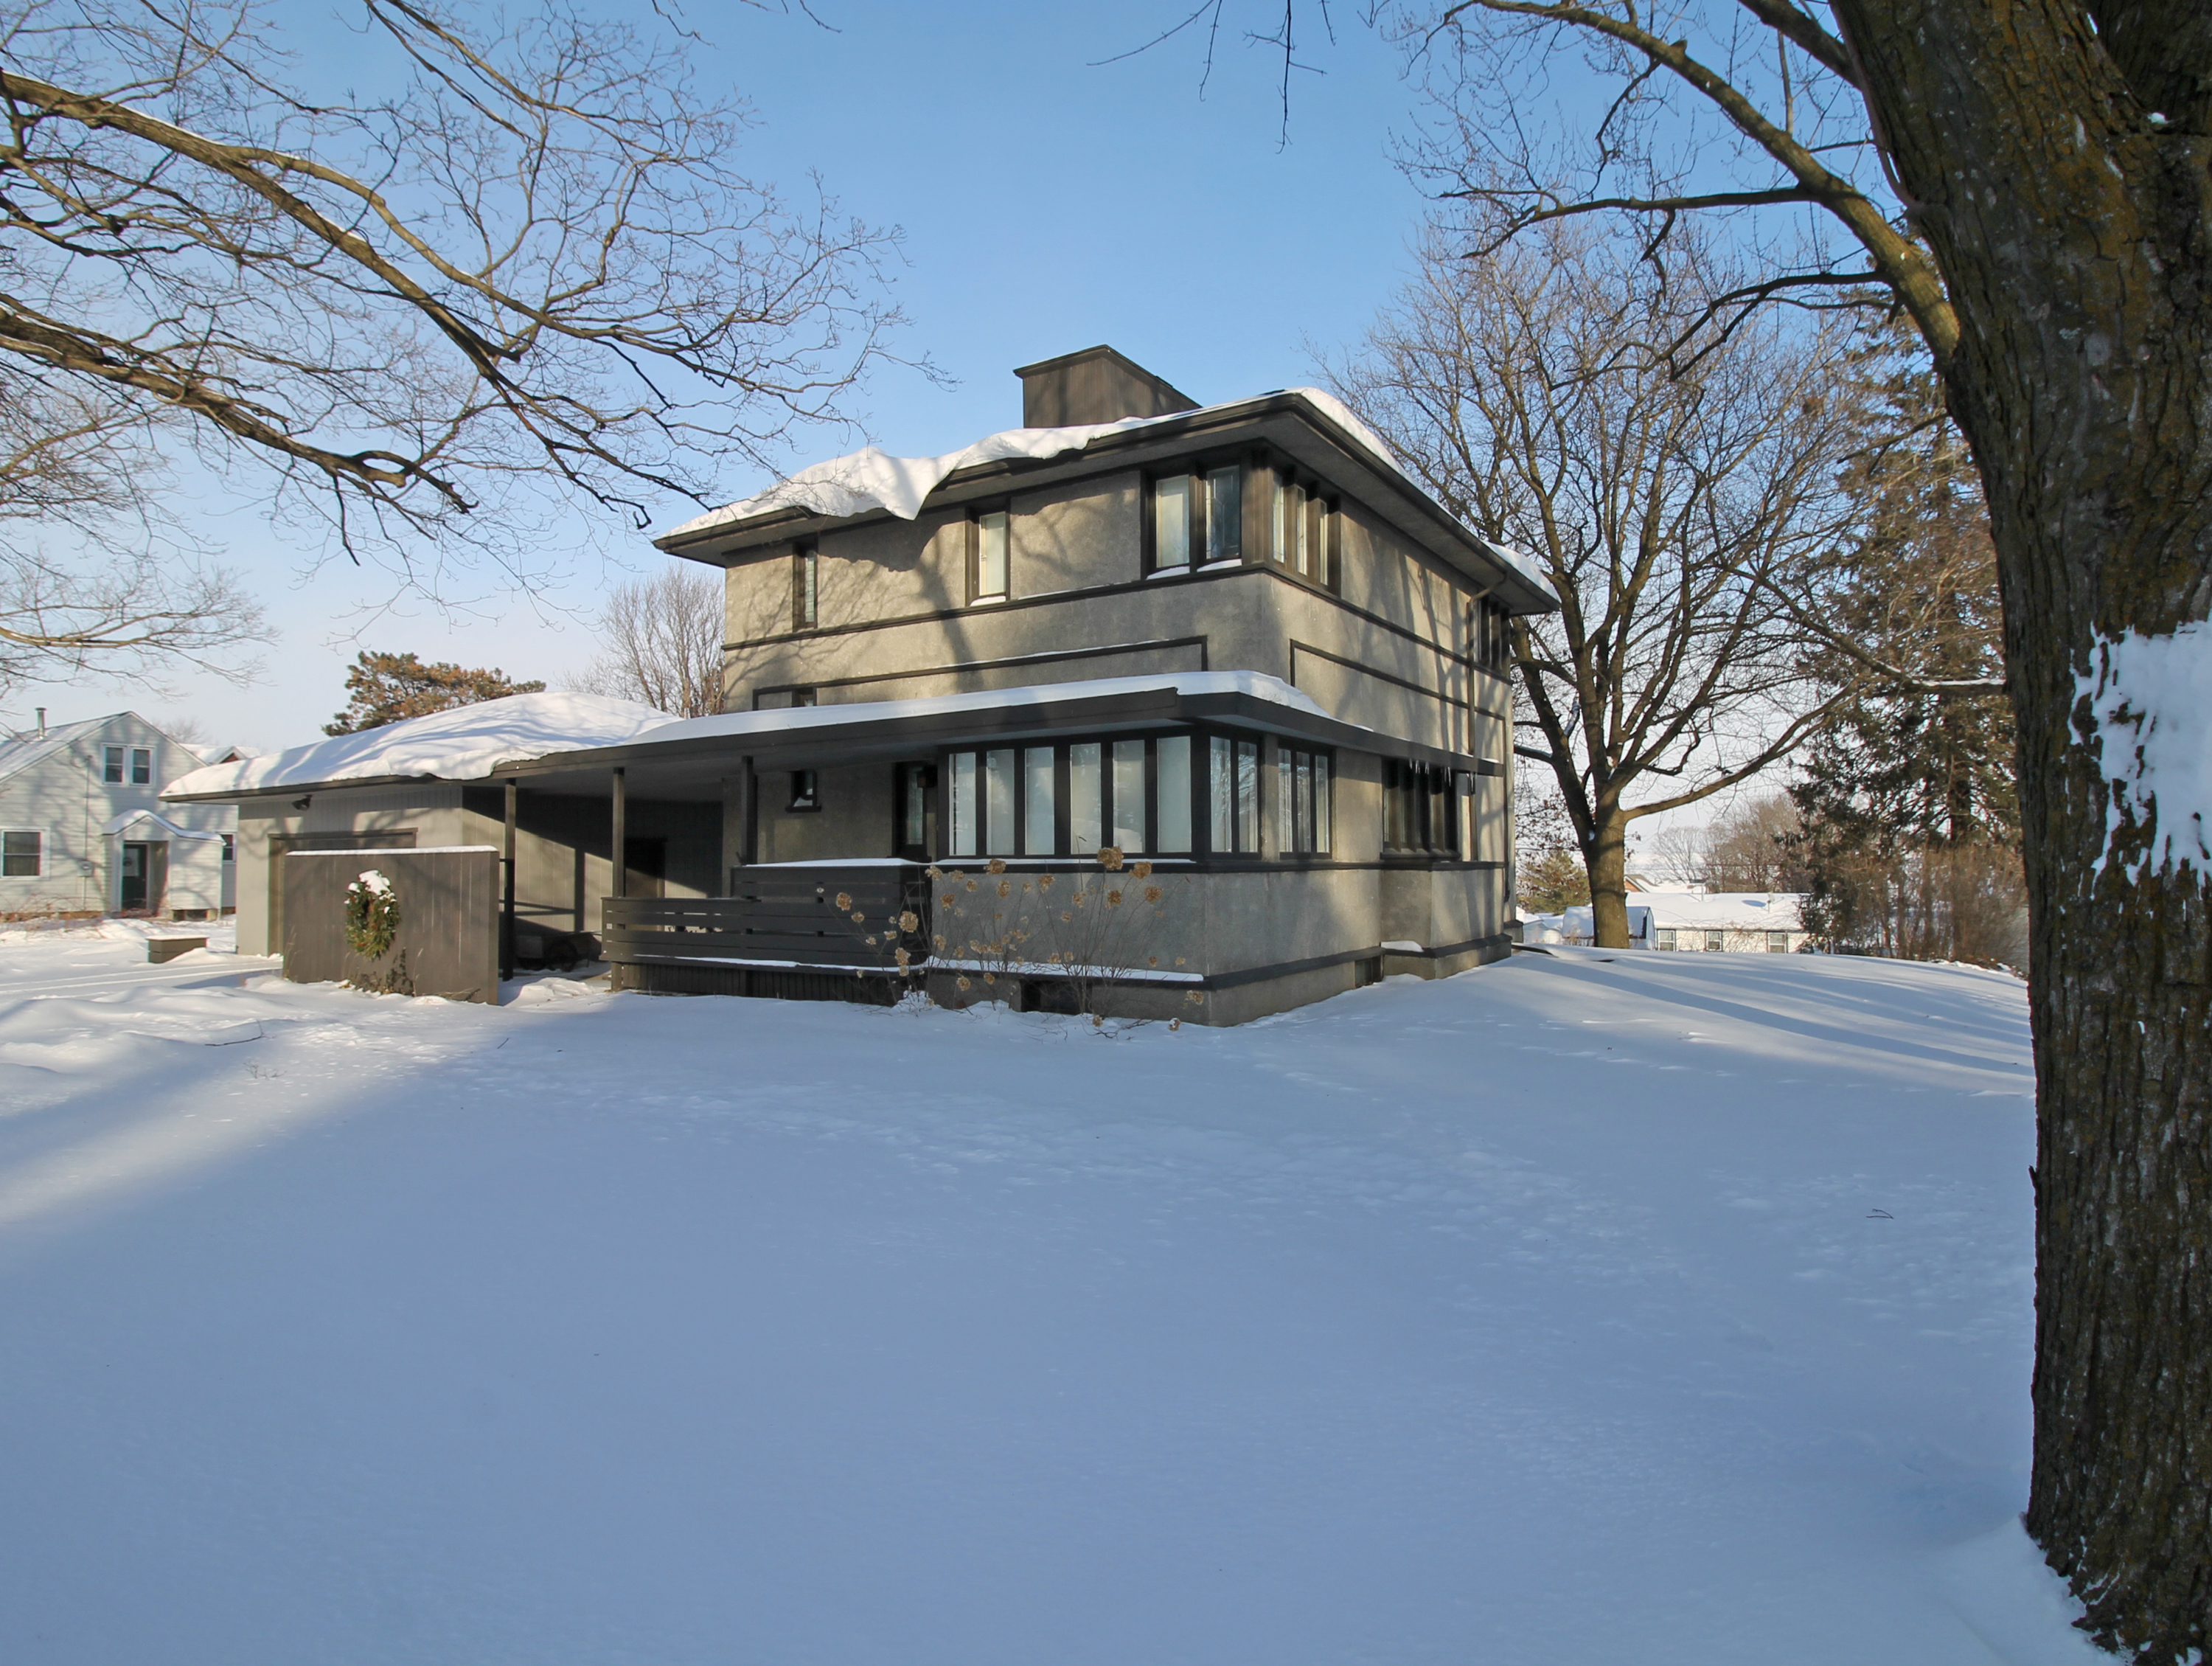 Meier House in Winter